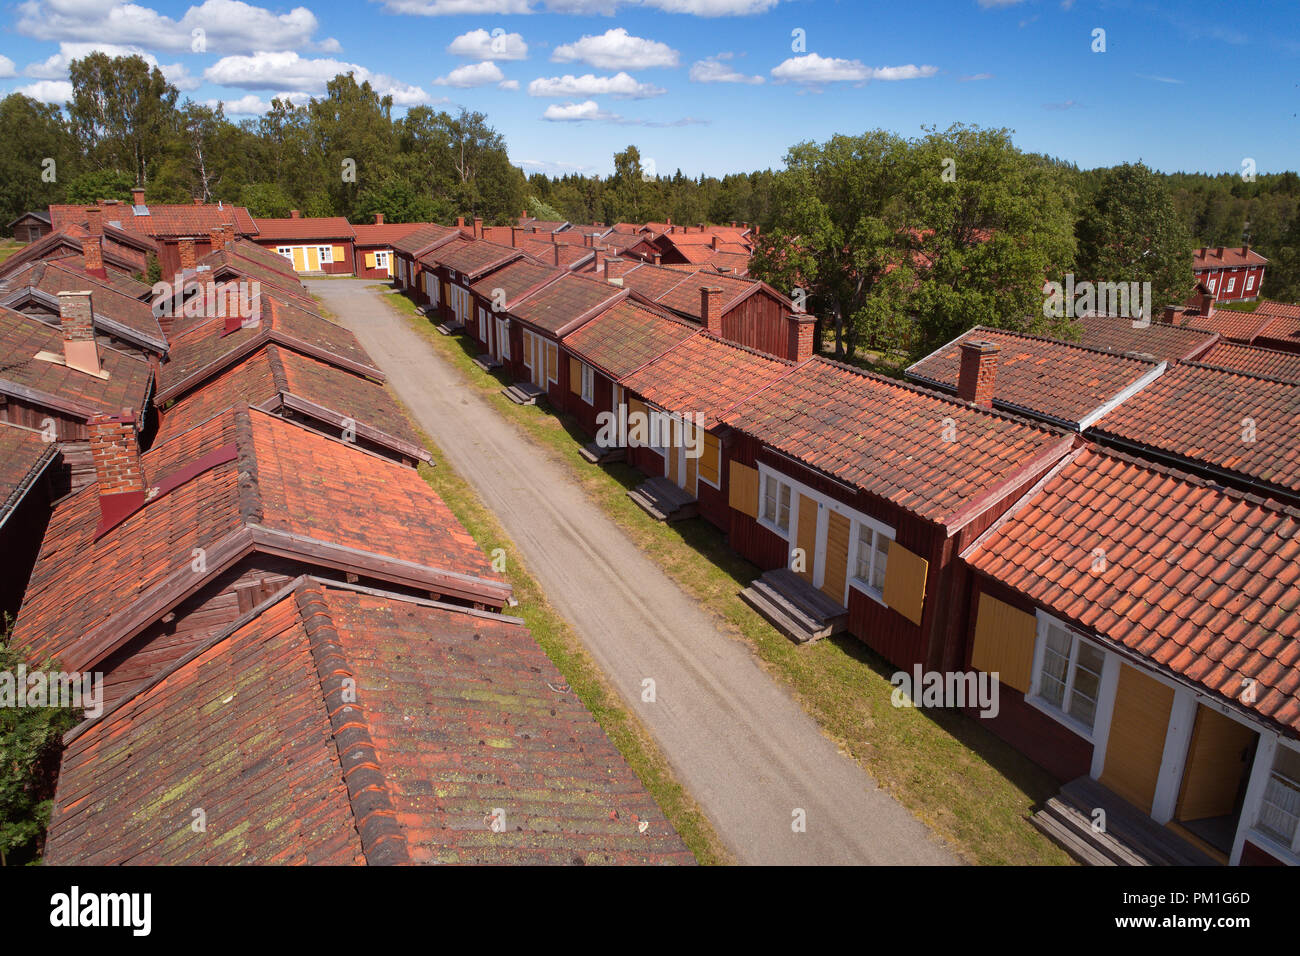 Lovanger, Sweden - June 21, 2018: High angel view of huts in the Lovanger church town. - Stock Image